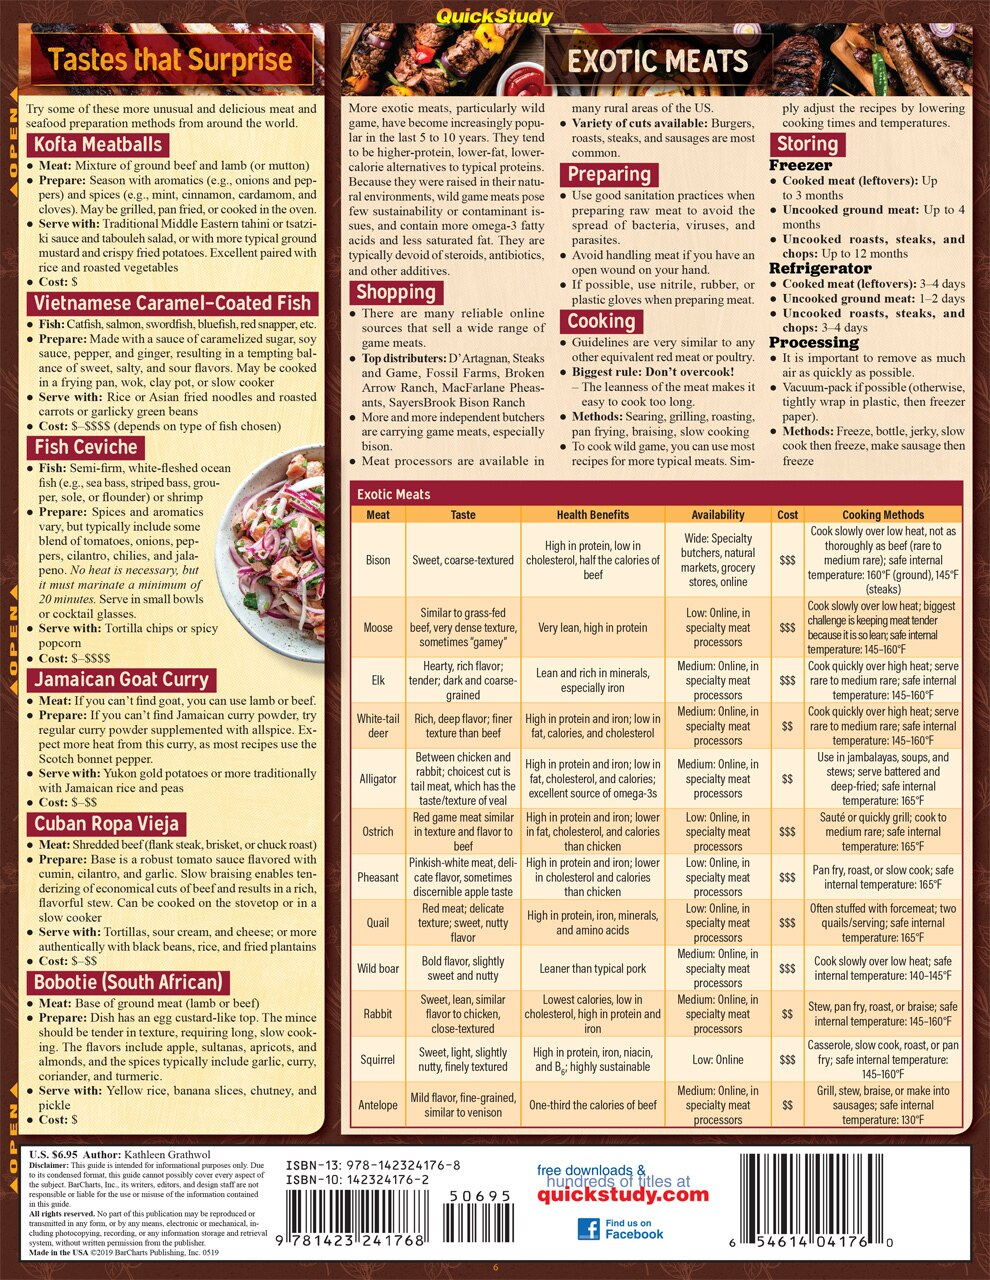 Quick Study QuickStudy Chef's Guide to Meat, Seafood & Poultry Laminated Reference Guide BarCharts Publishing Culinary Reference Outline Back Image